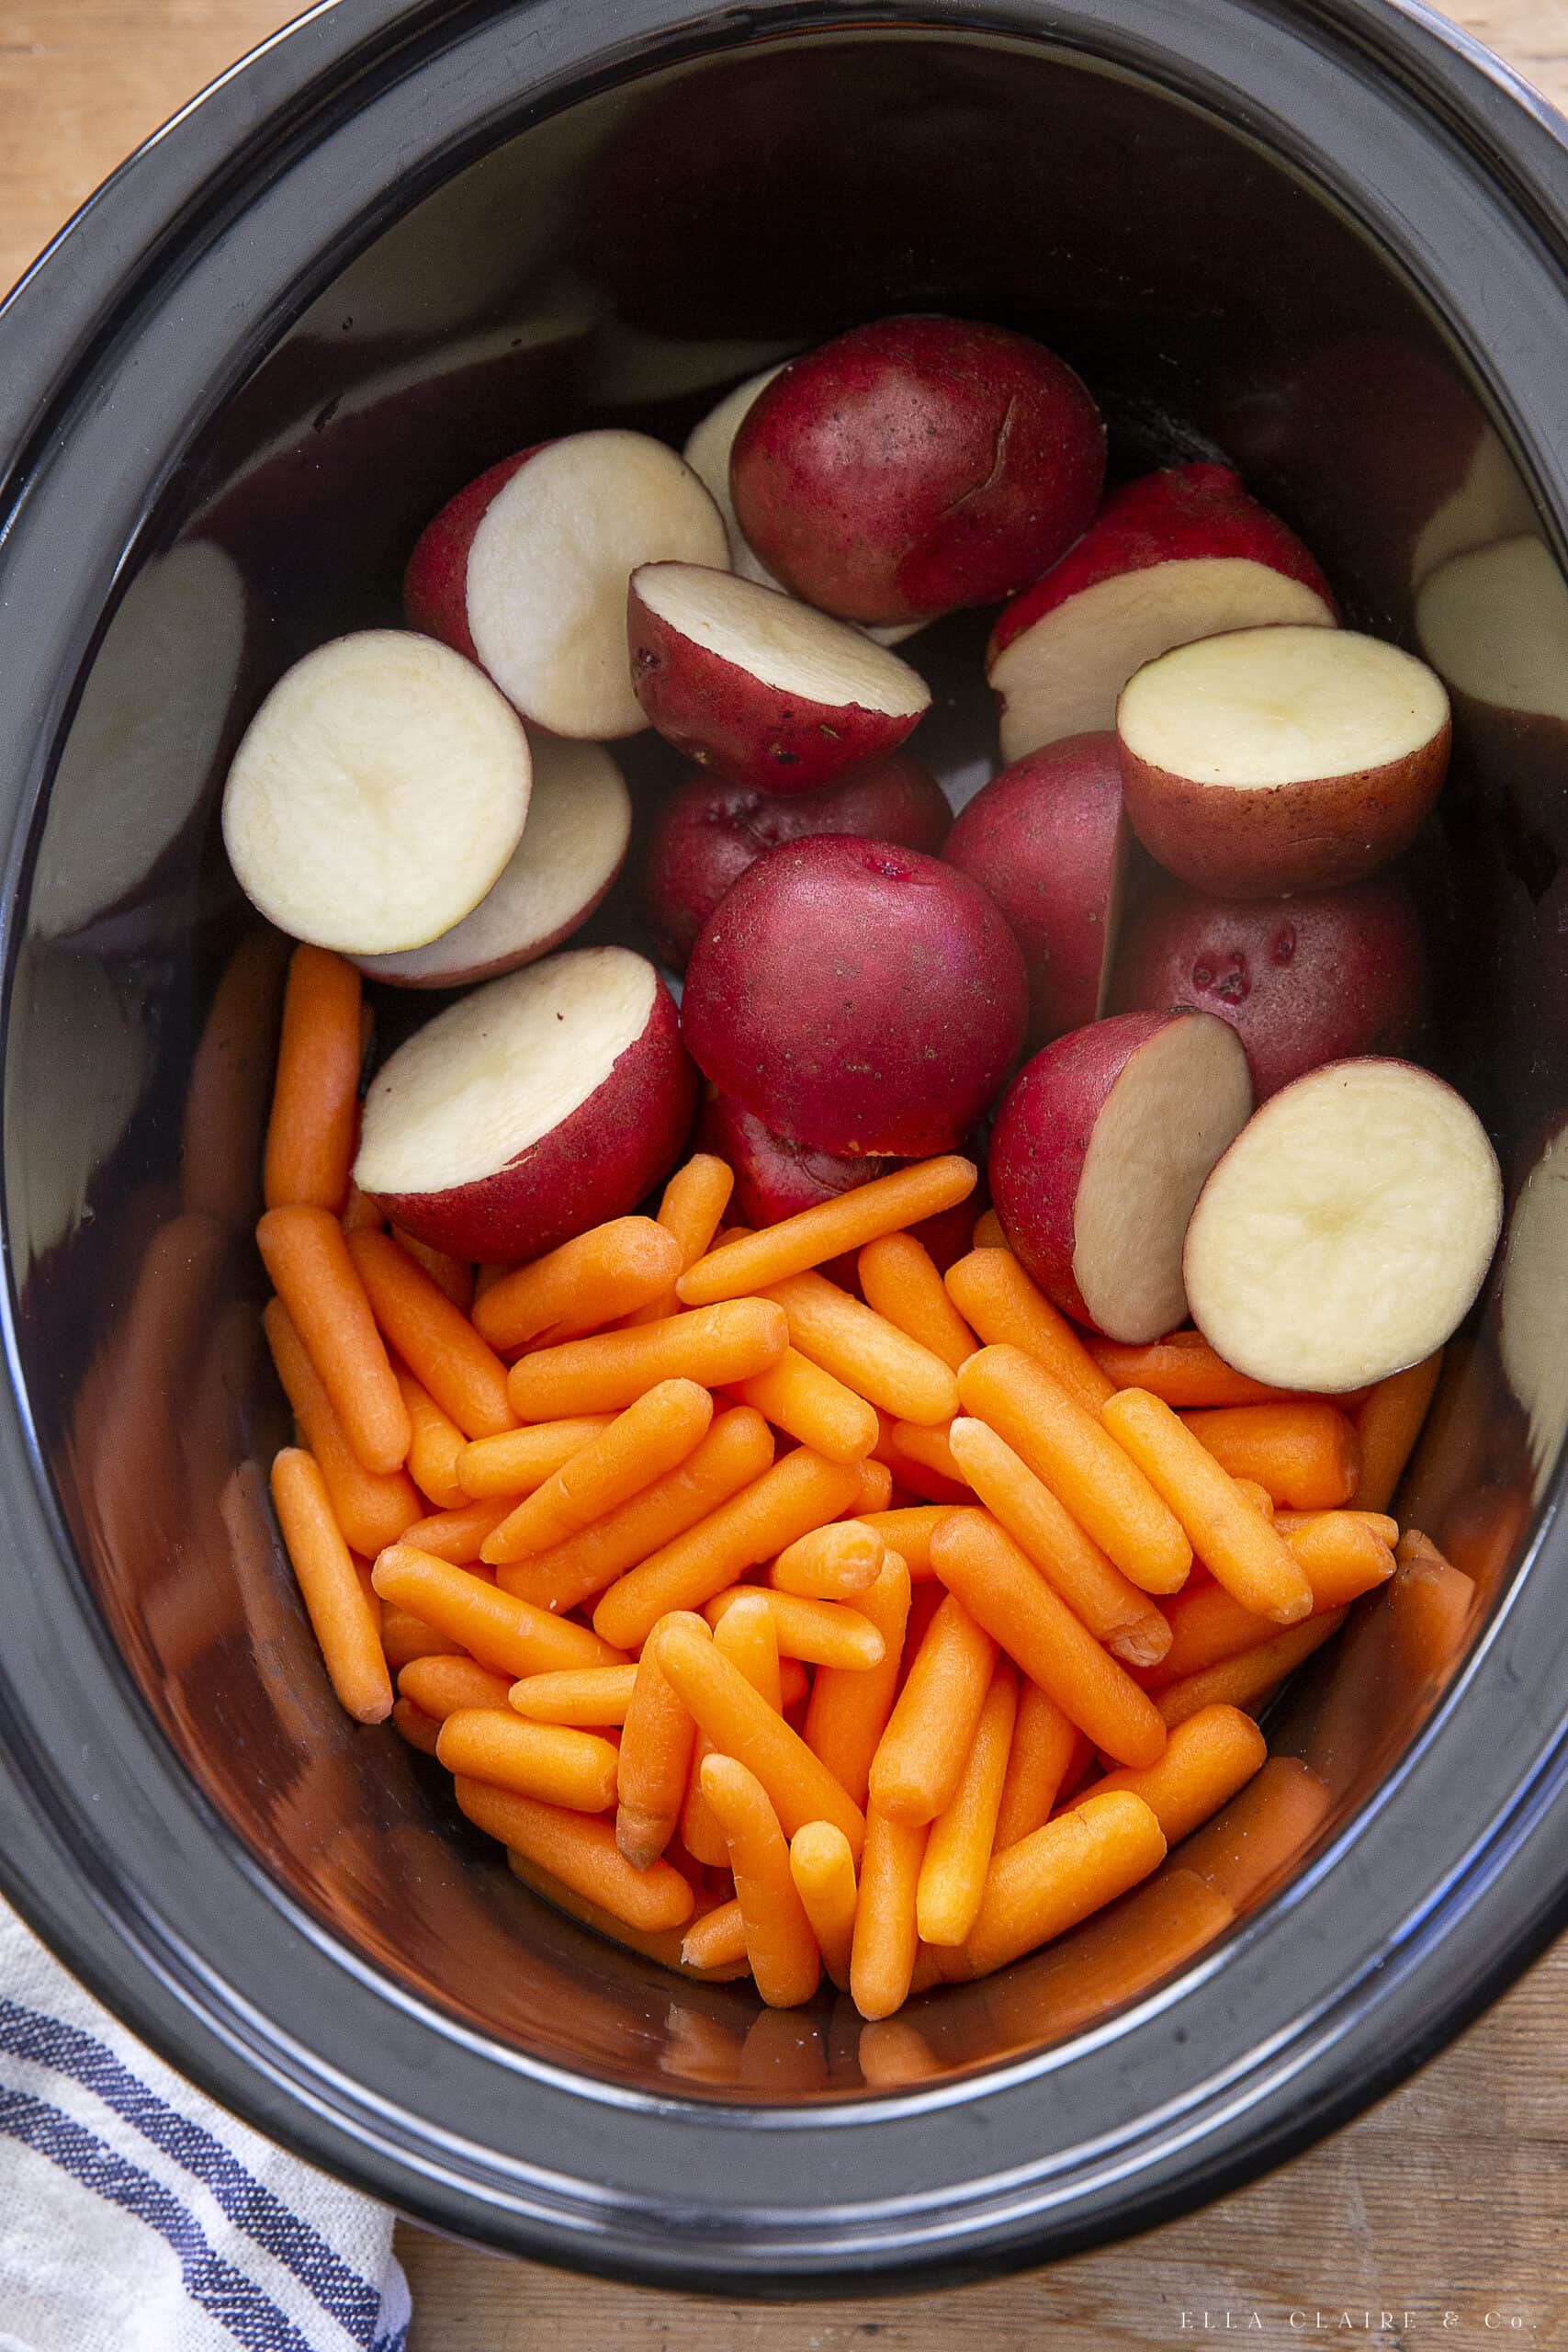 potatoes and carrots in the crockpot